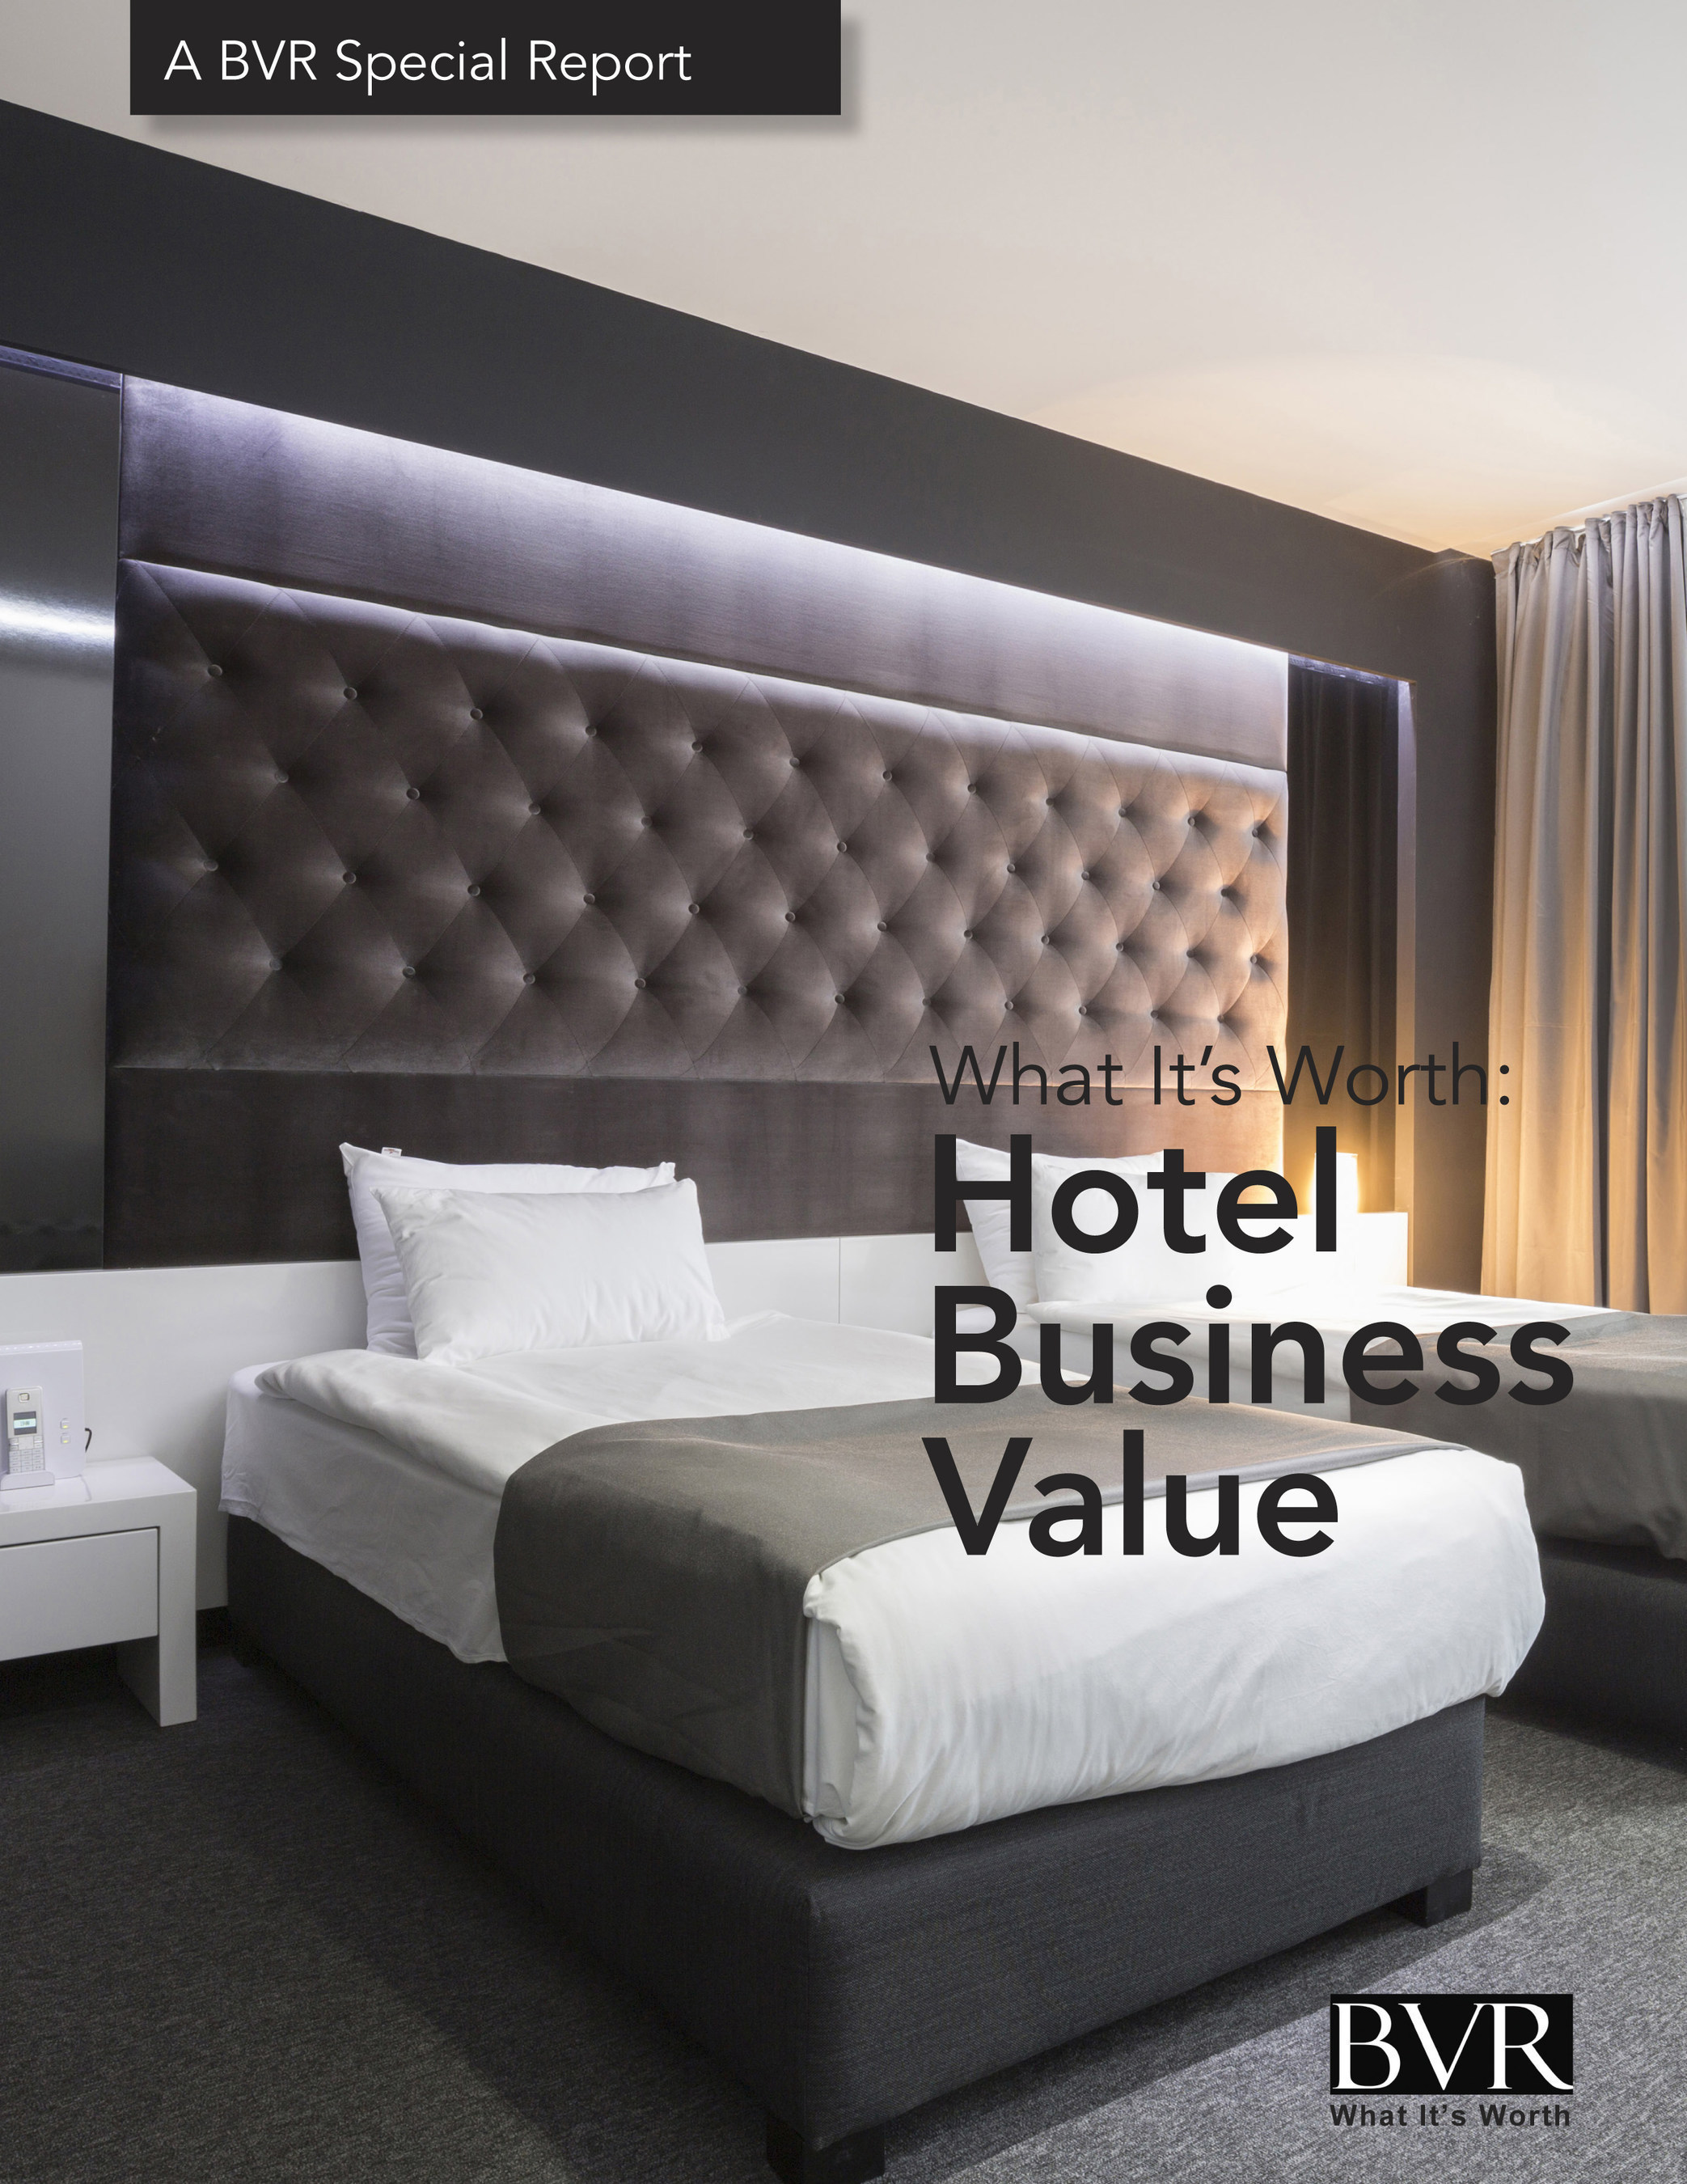 Hotel Business Value